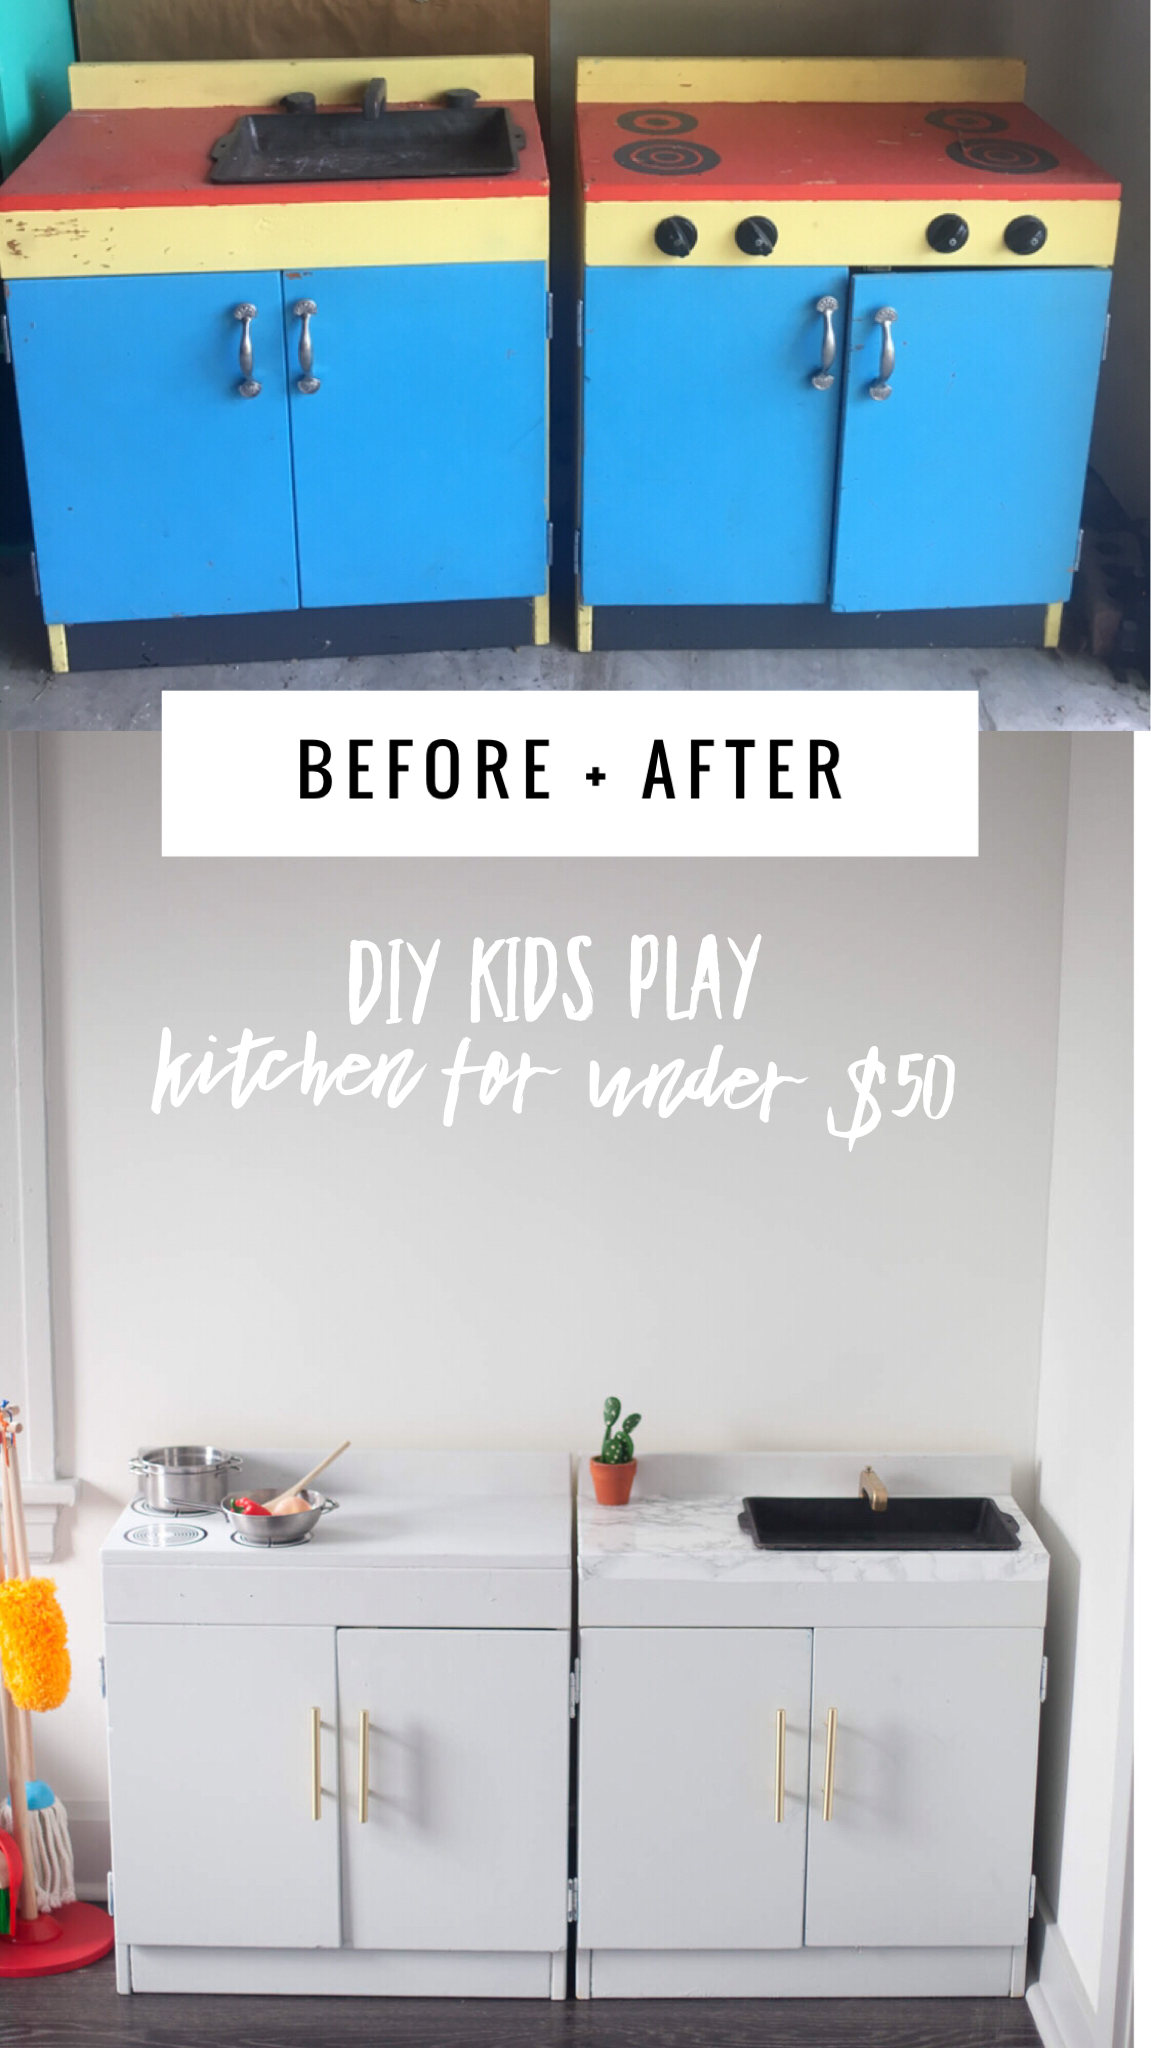 Diy Kids Kitchen Diy Kids Play Kitchen Play Kitchen Set